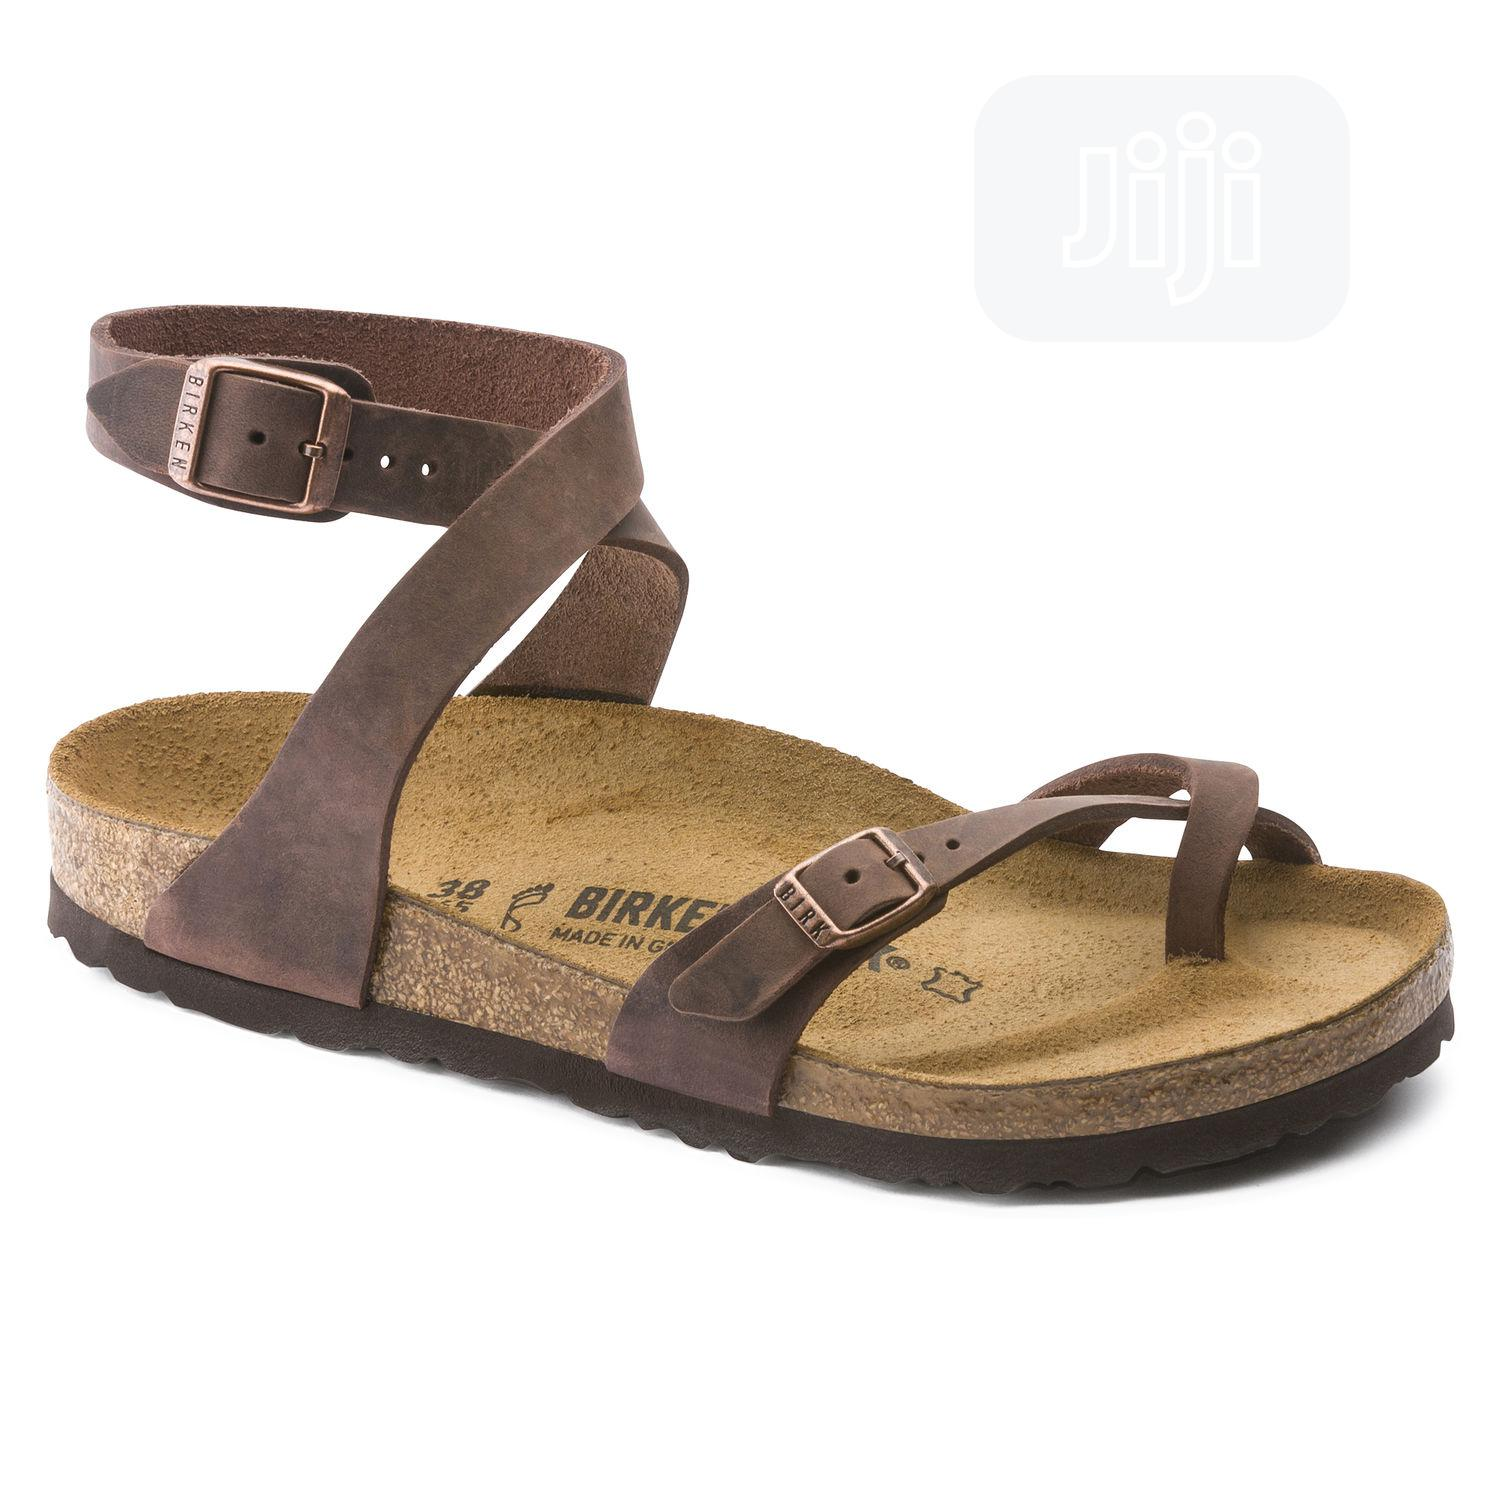 Real Quality Leather Sandals (Berkstocks) | Shoes for sale in Alimosho, Lagos State, Nigeria